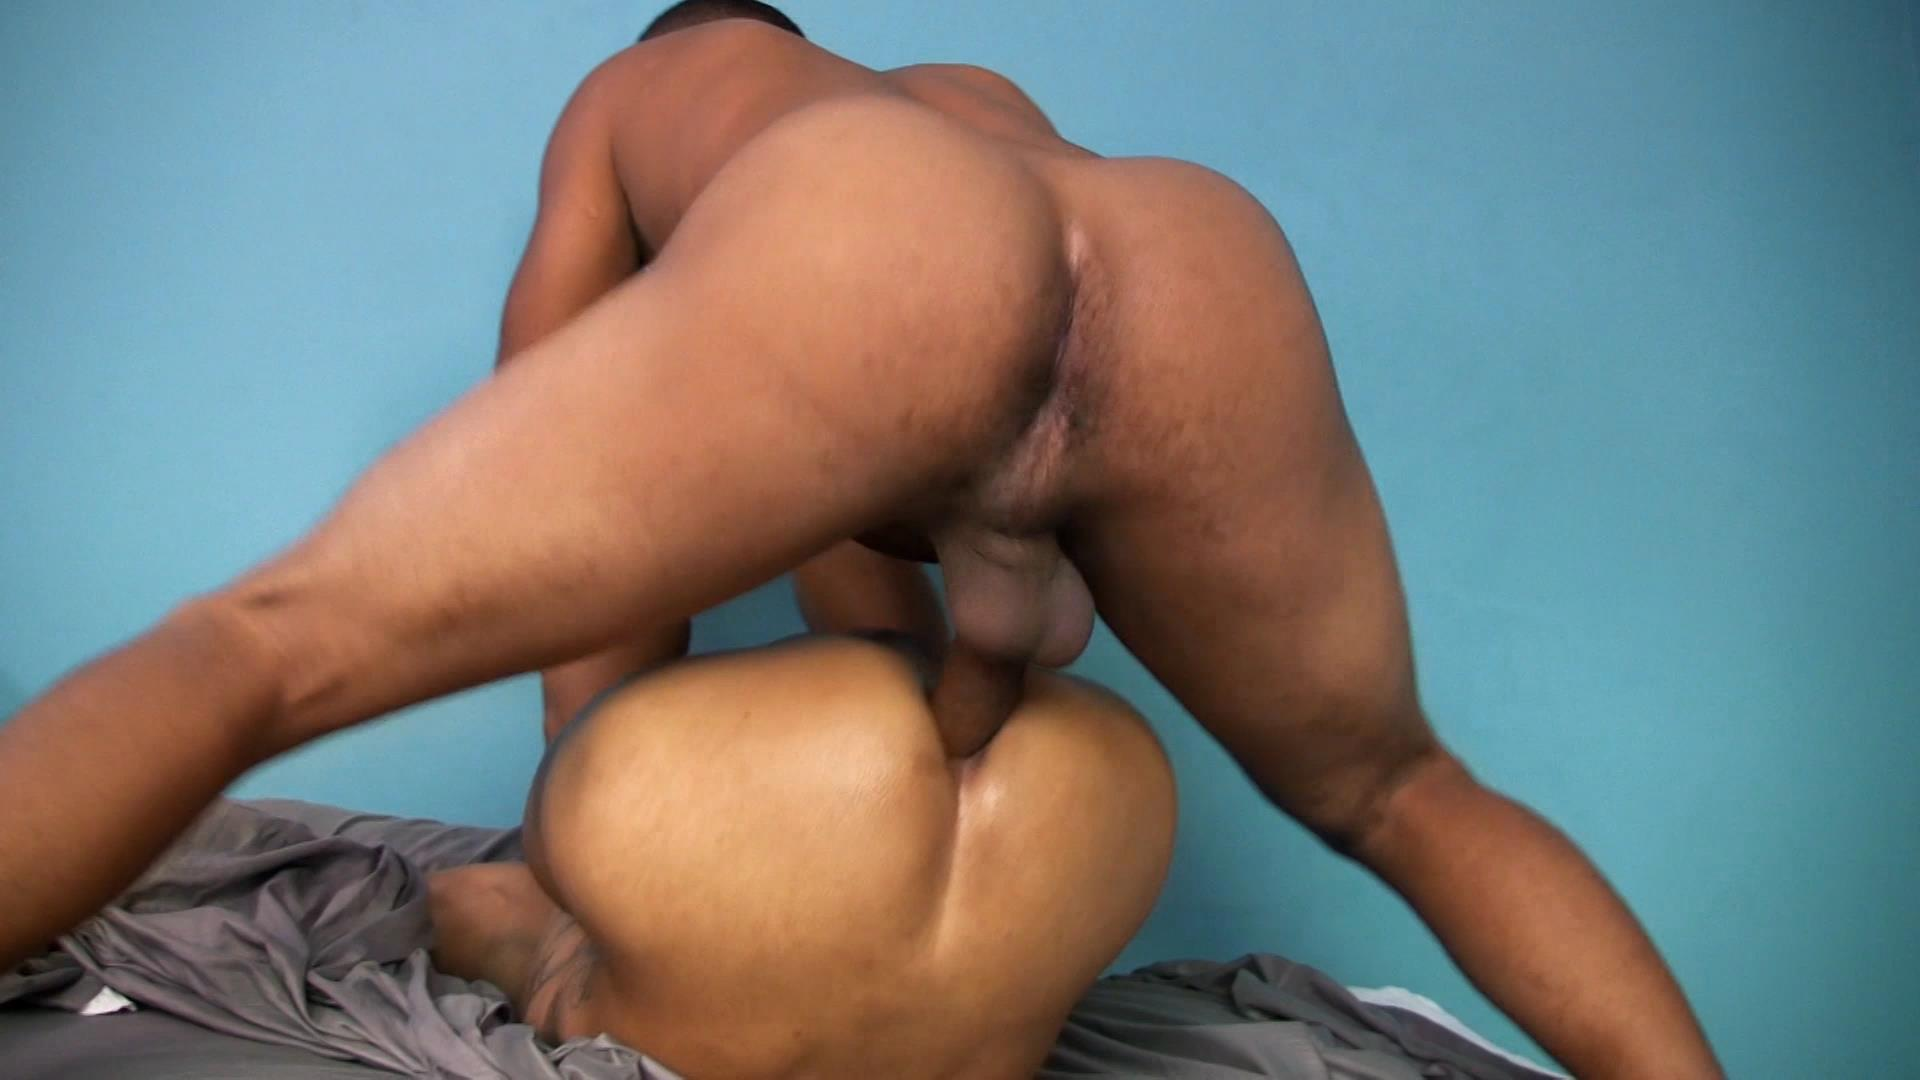 iO-Macho-Latino-Twinks-Bareback-Big-Uncut-Dicks-Amateur-Gay-Porn-09 Aggressive Latino Twink Bareback Breeds His Latin Buddy With His Big Uncut Cock